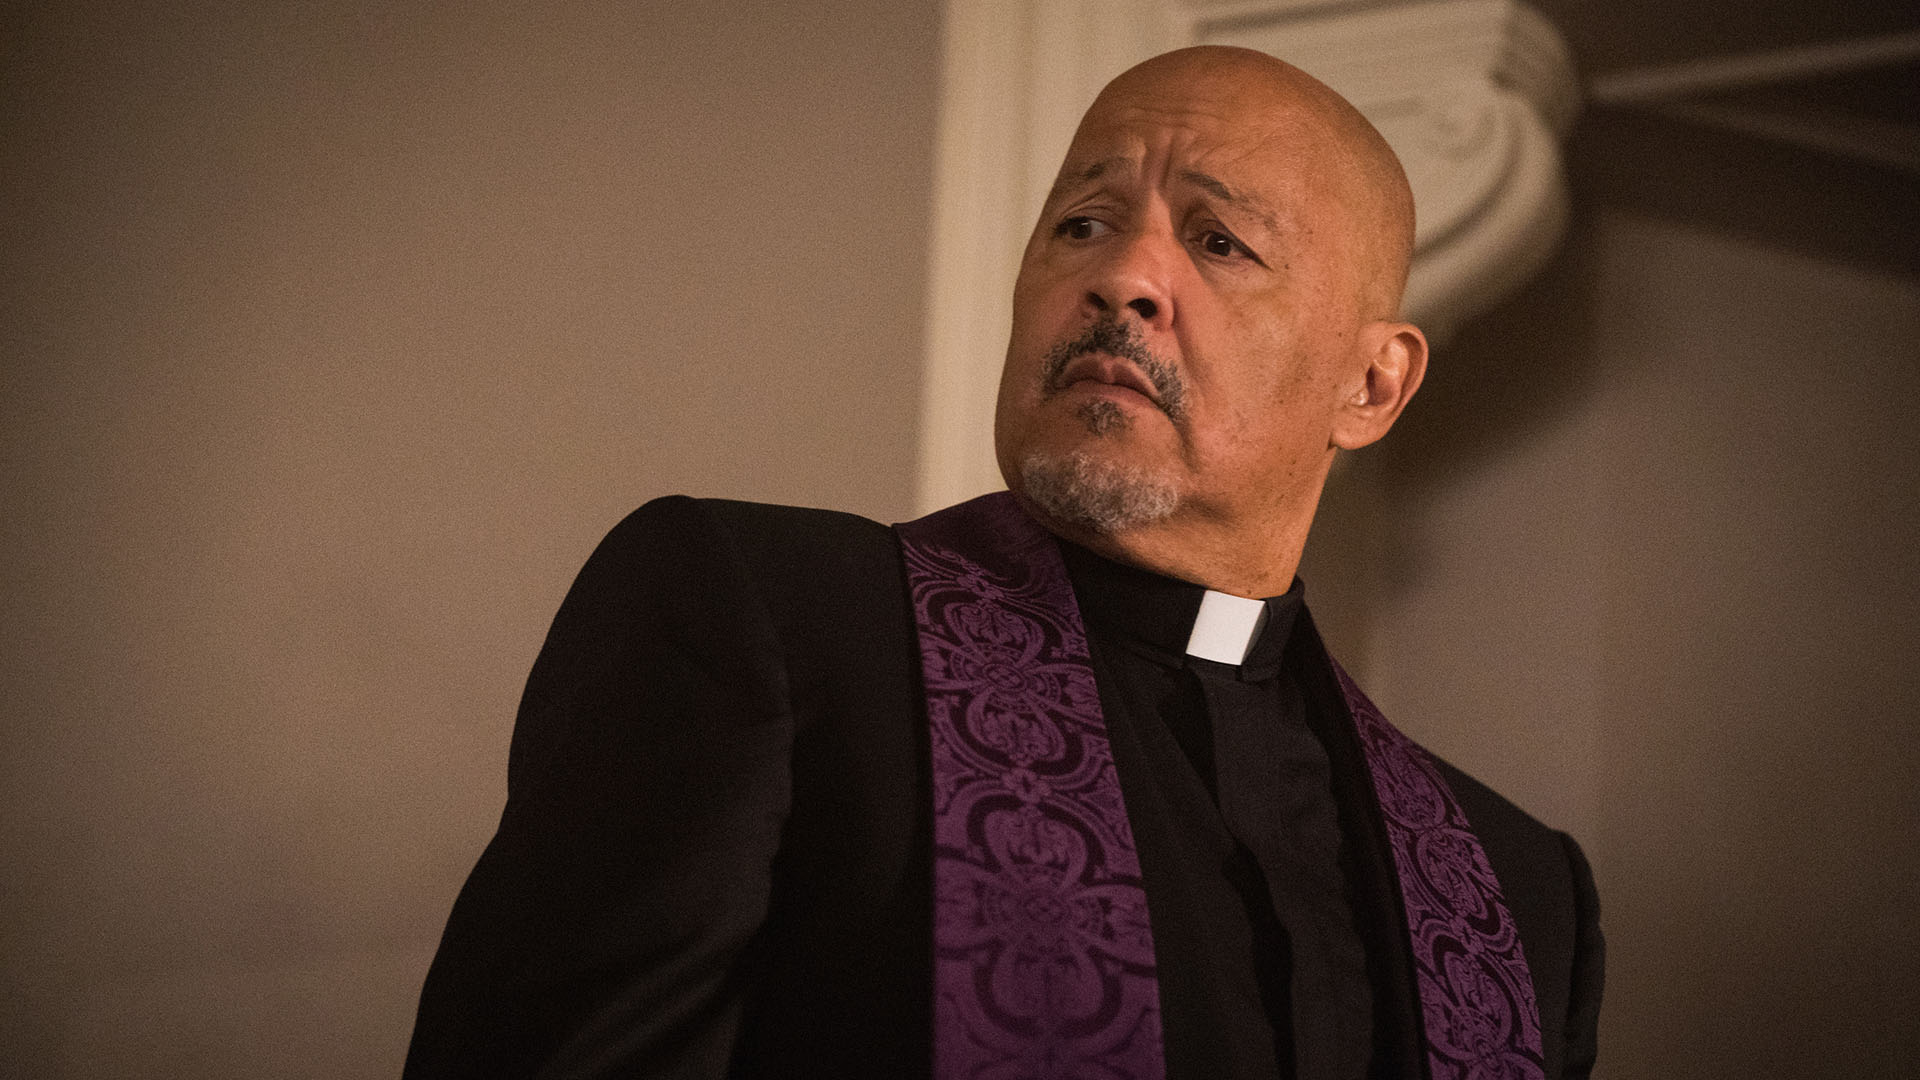 Clark Johnson as Father Amara